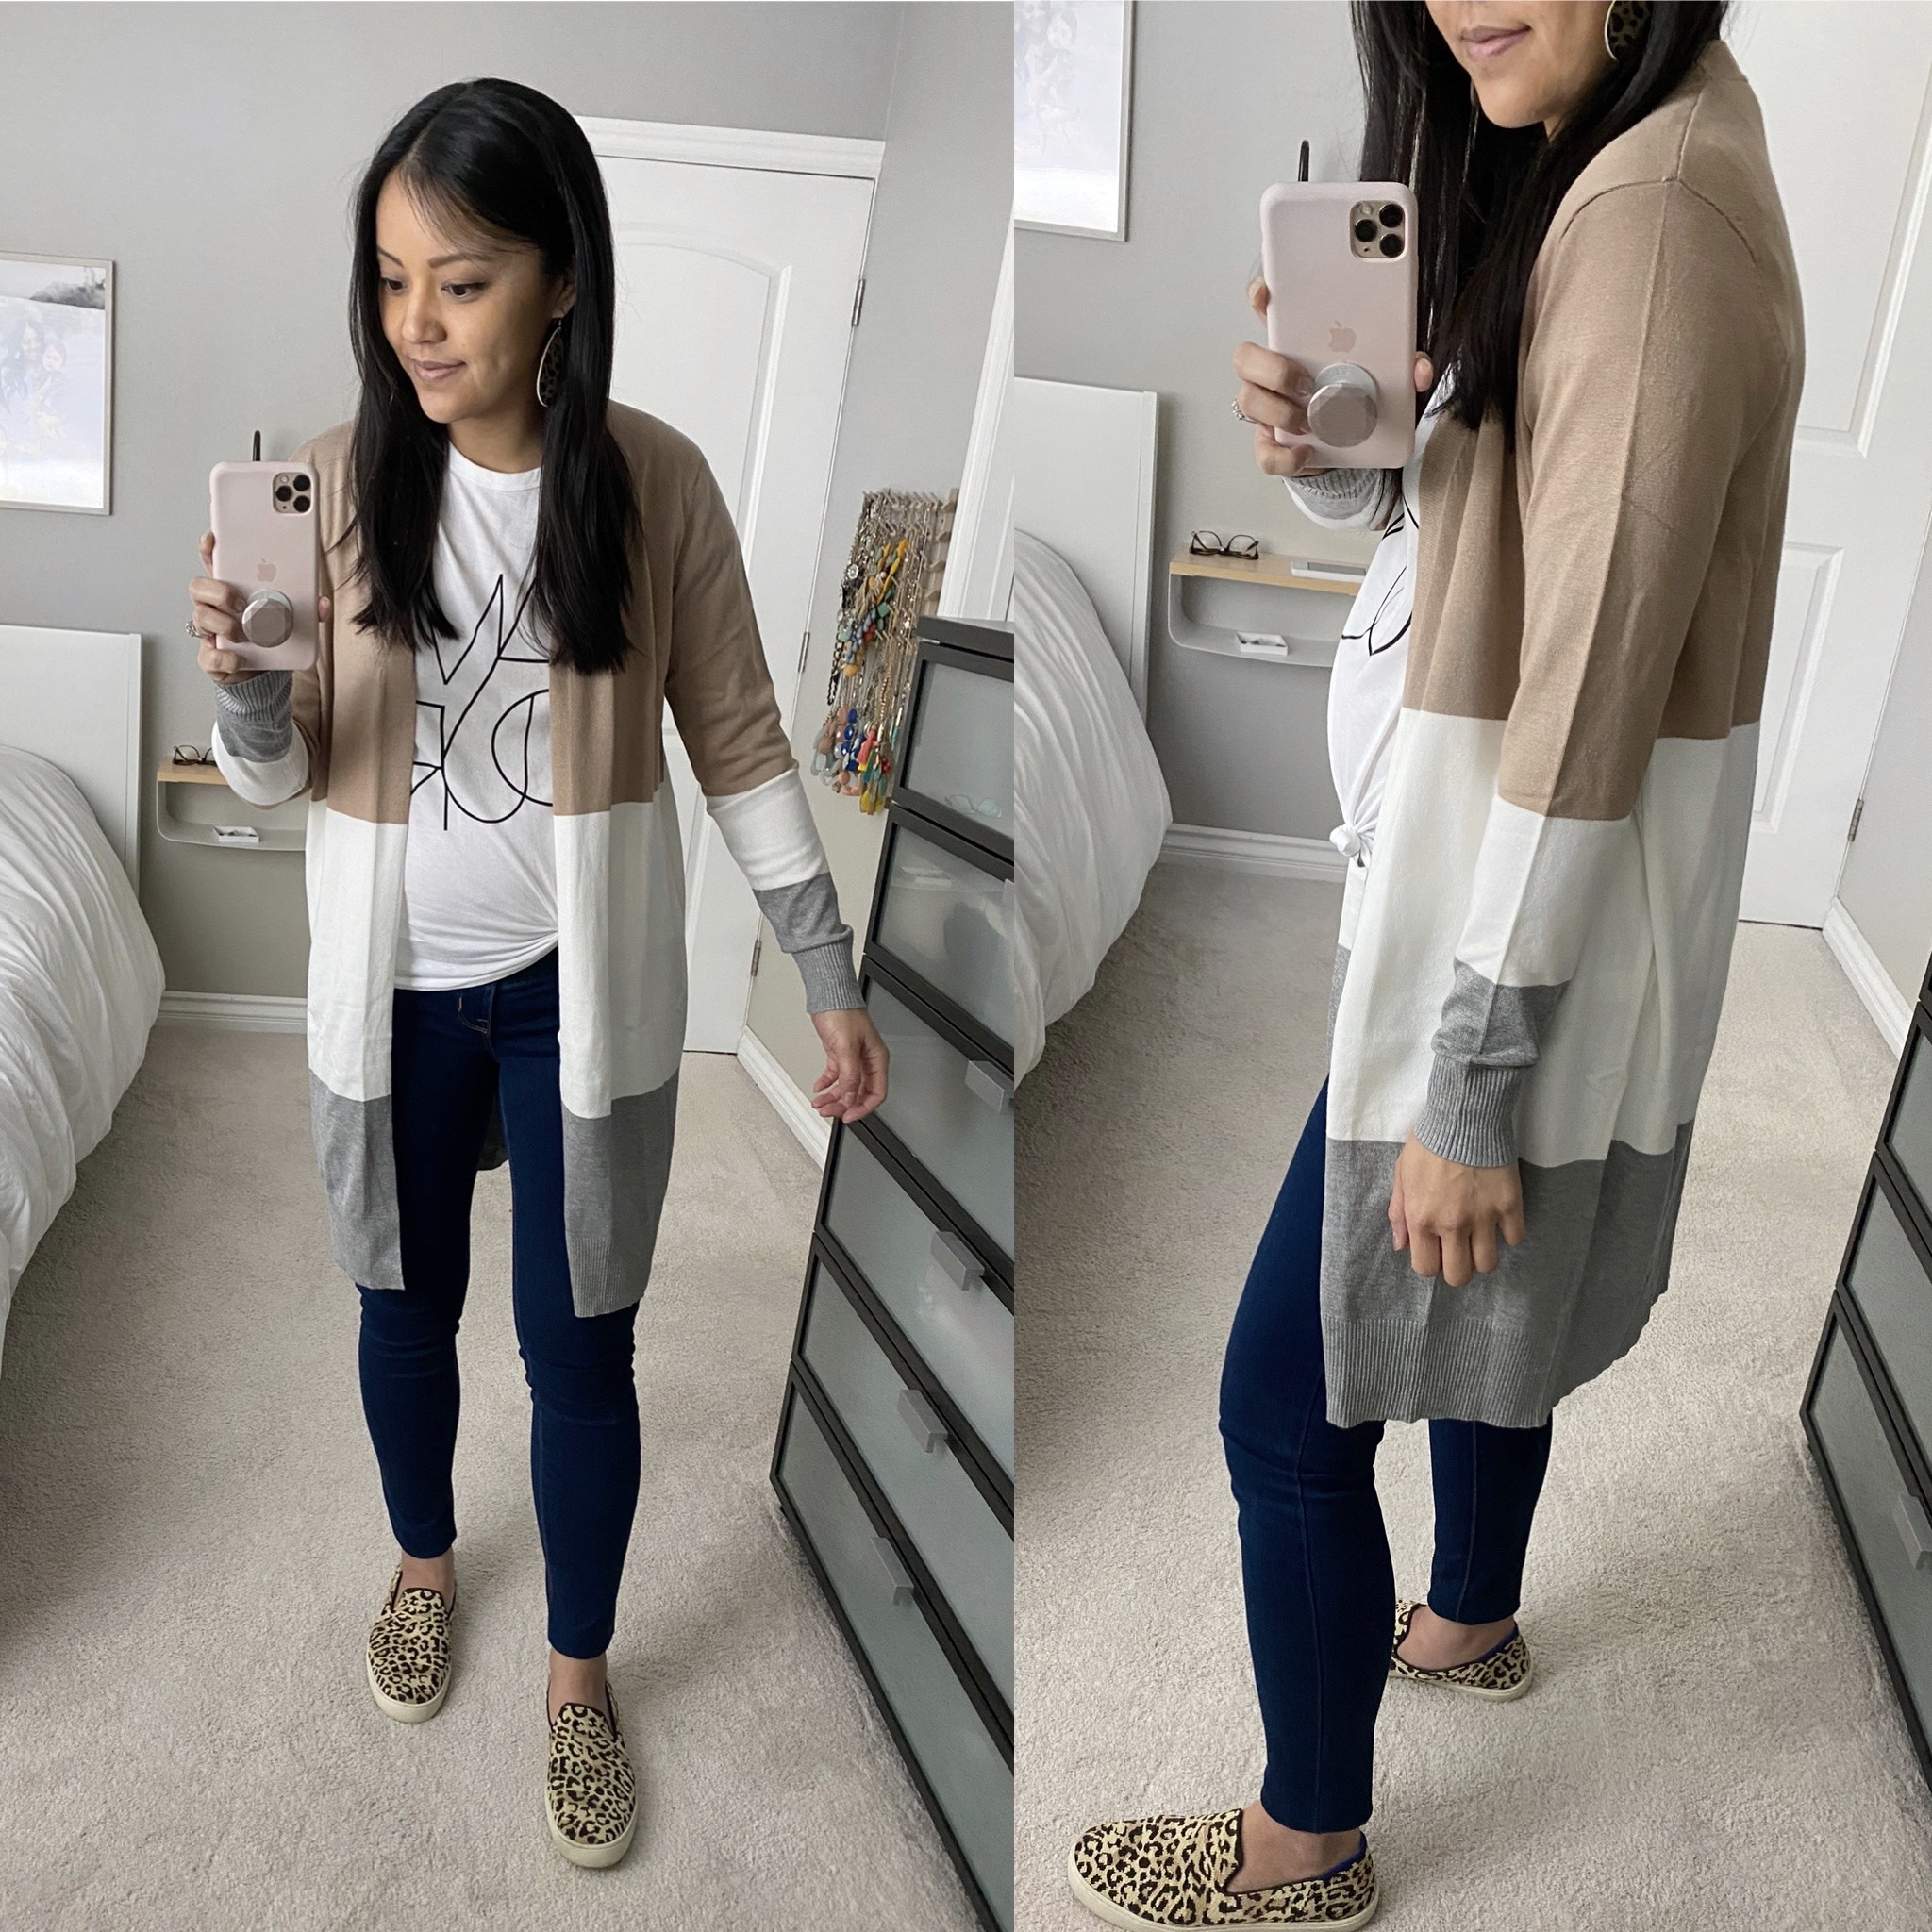 Casual Spring Outfit: white graphic tee + long tan and grey color block cardigan + dark skinny jeans + leopard slip-on sneakers + leopard leather earrings